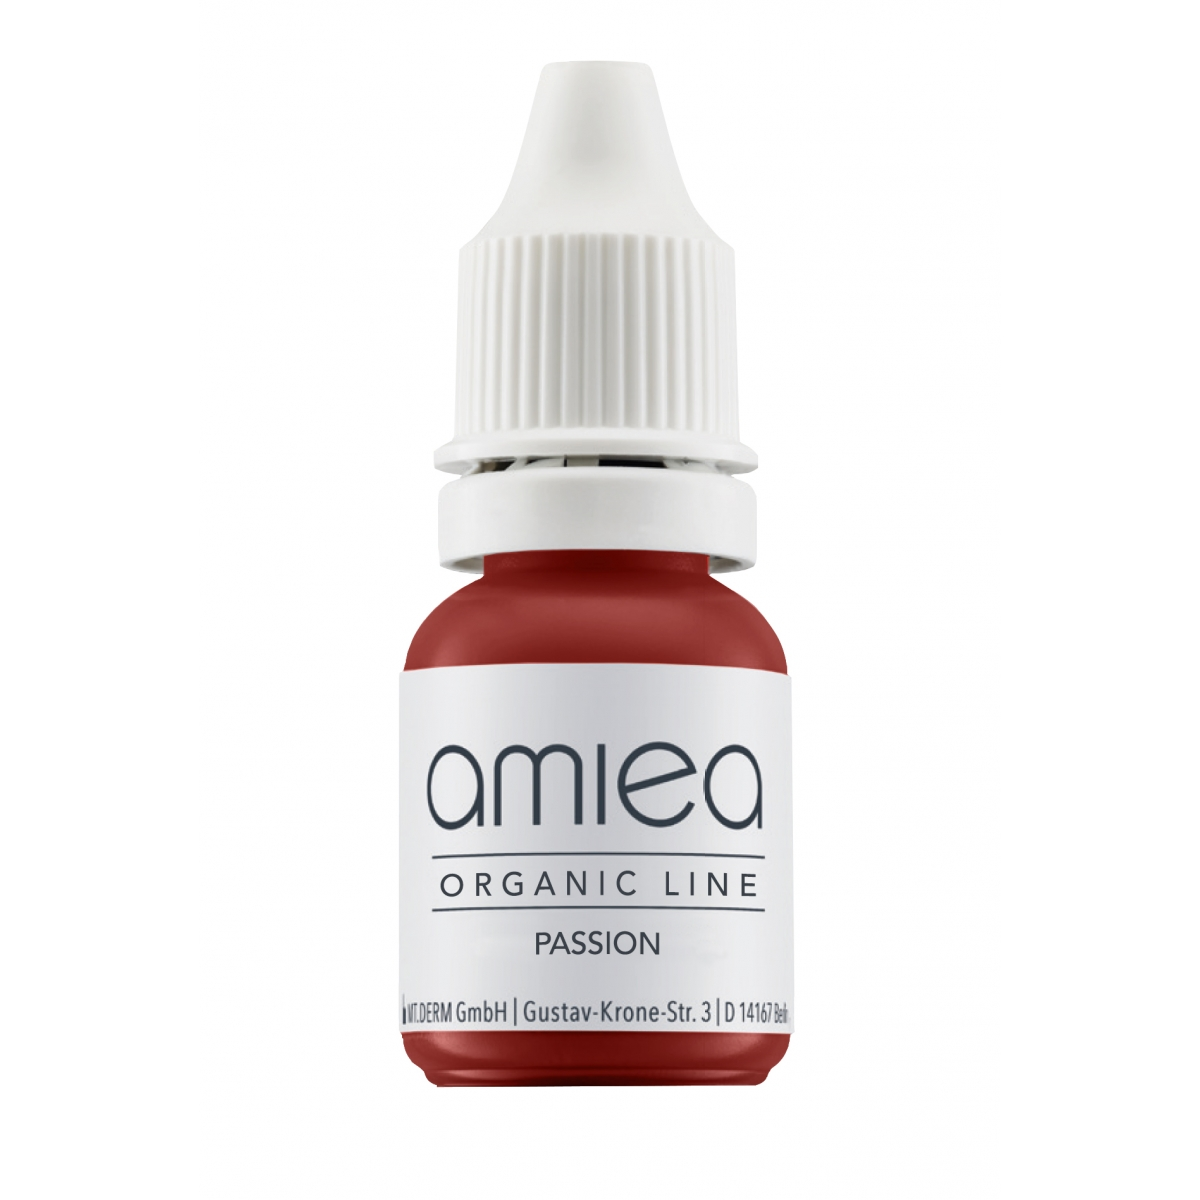 ORGANIC LINE (10ml) - PIGMENT PASSION ORGANICLINE AMIEA (10 ml)